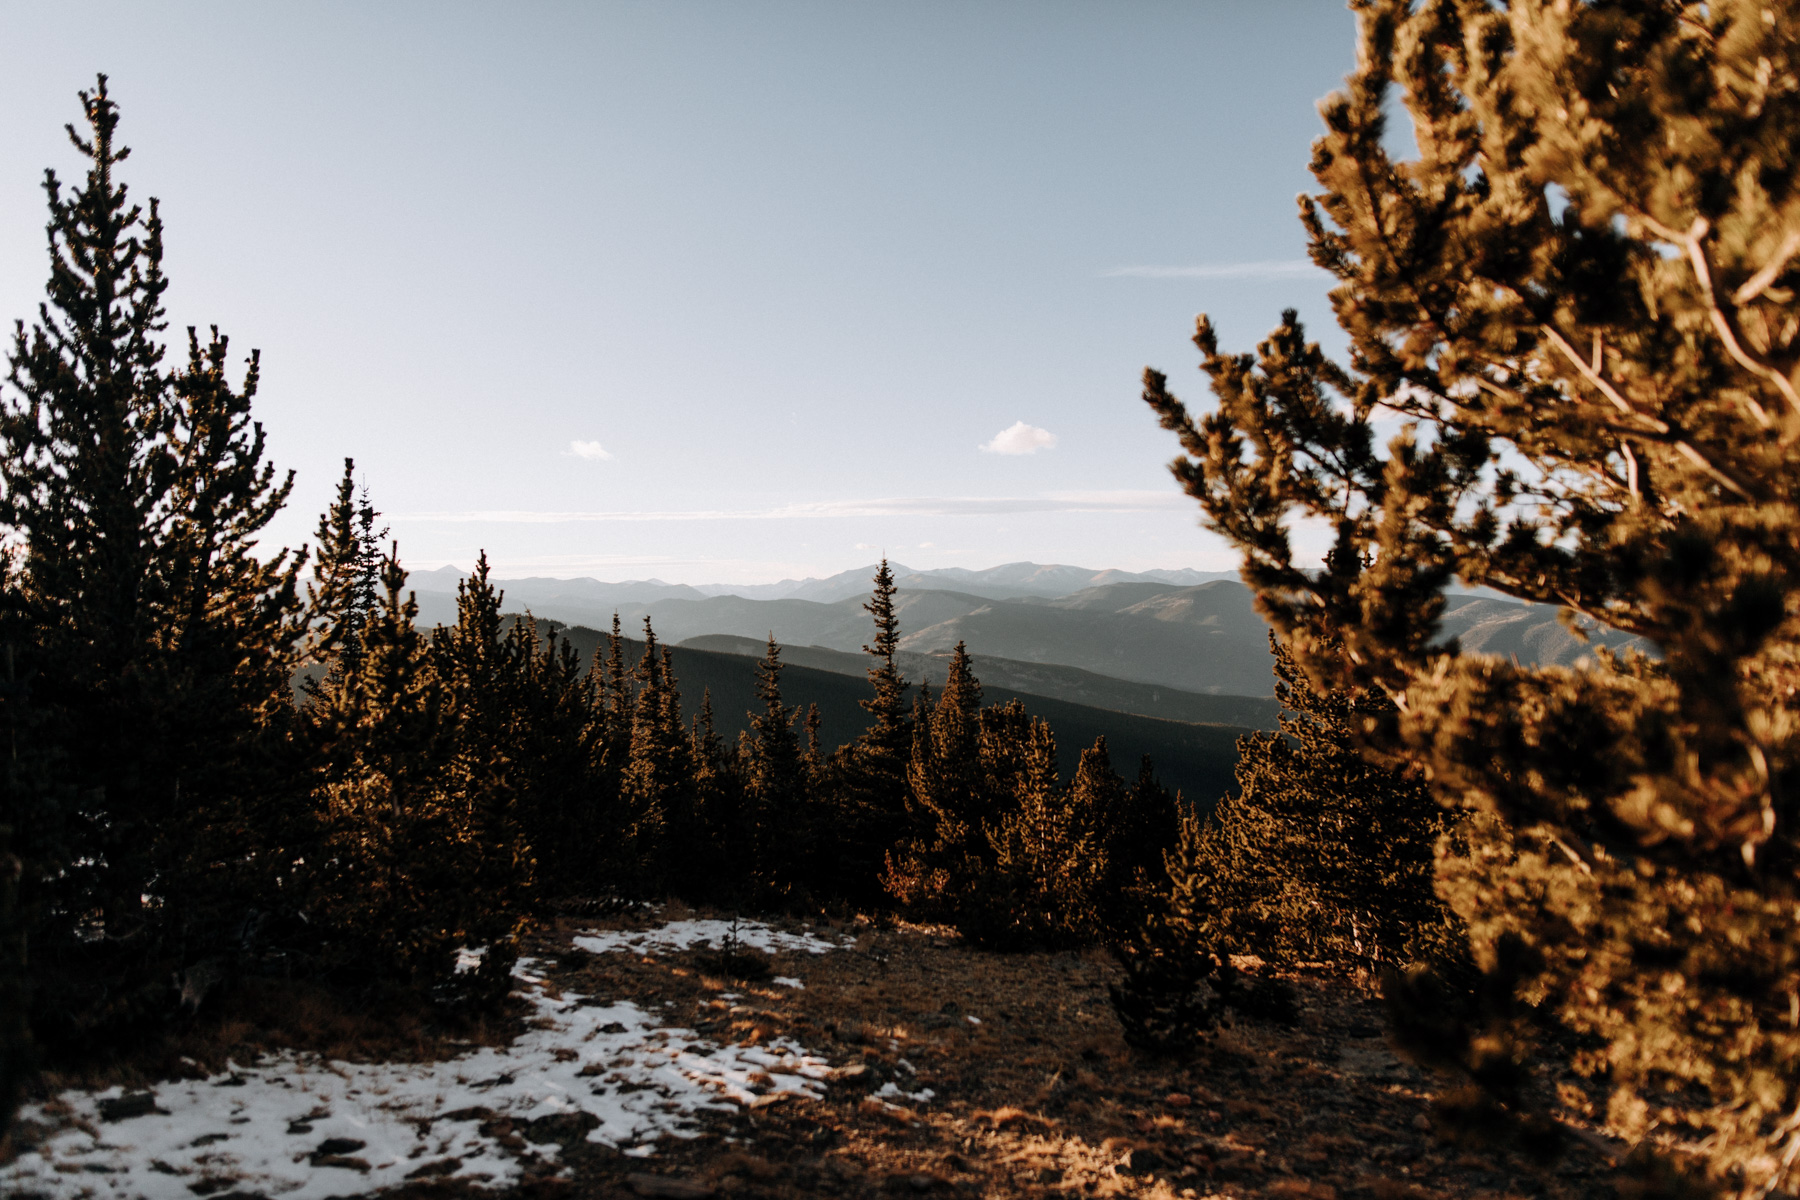 The 10 Best Hikes and Trails Near Denver | Chief Mountain, Idaho Springs